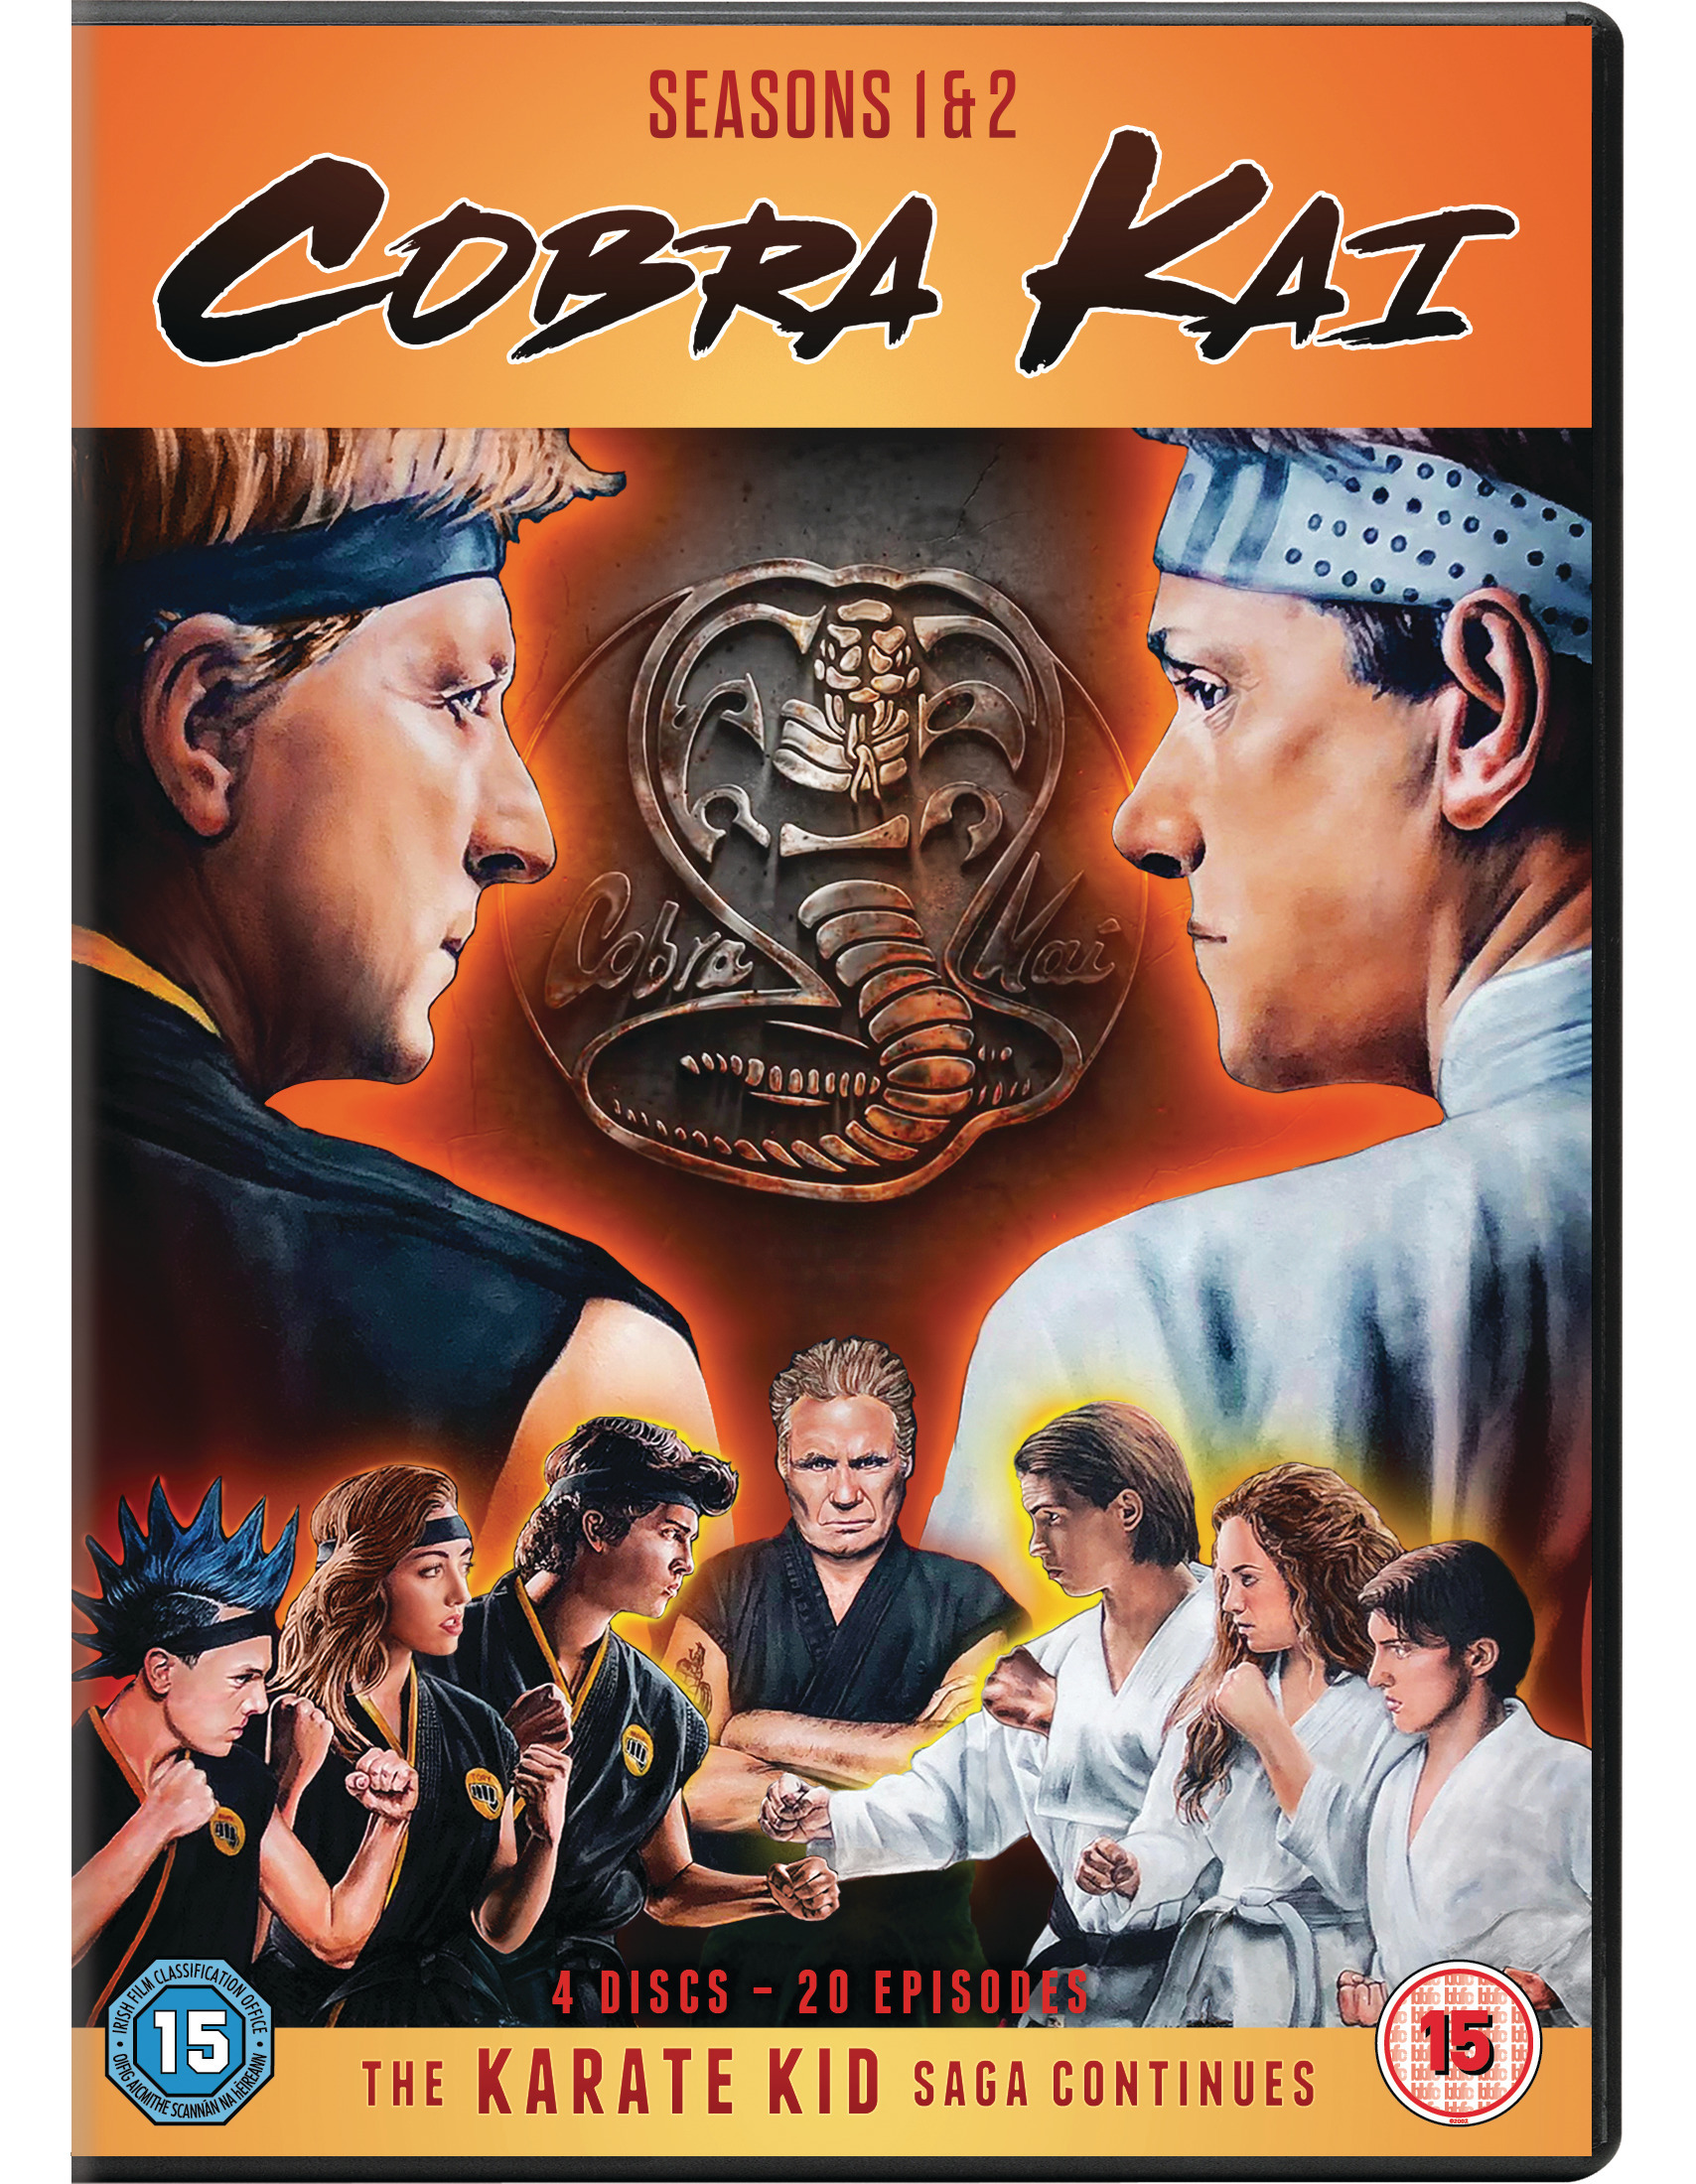 COBRA KAI SEASONS 1 & 2 Available on DVD on May 4